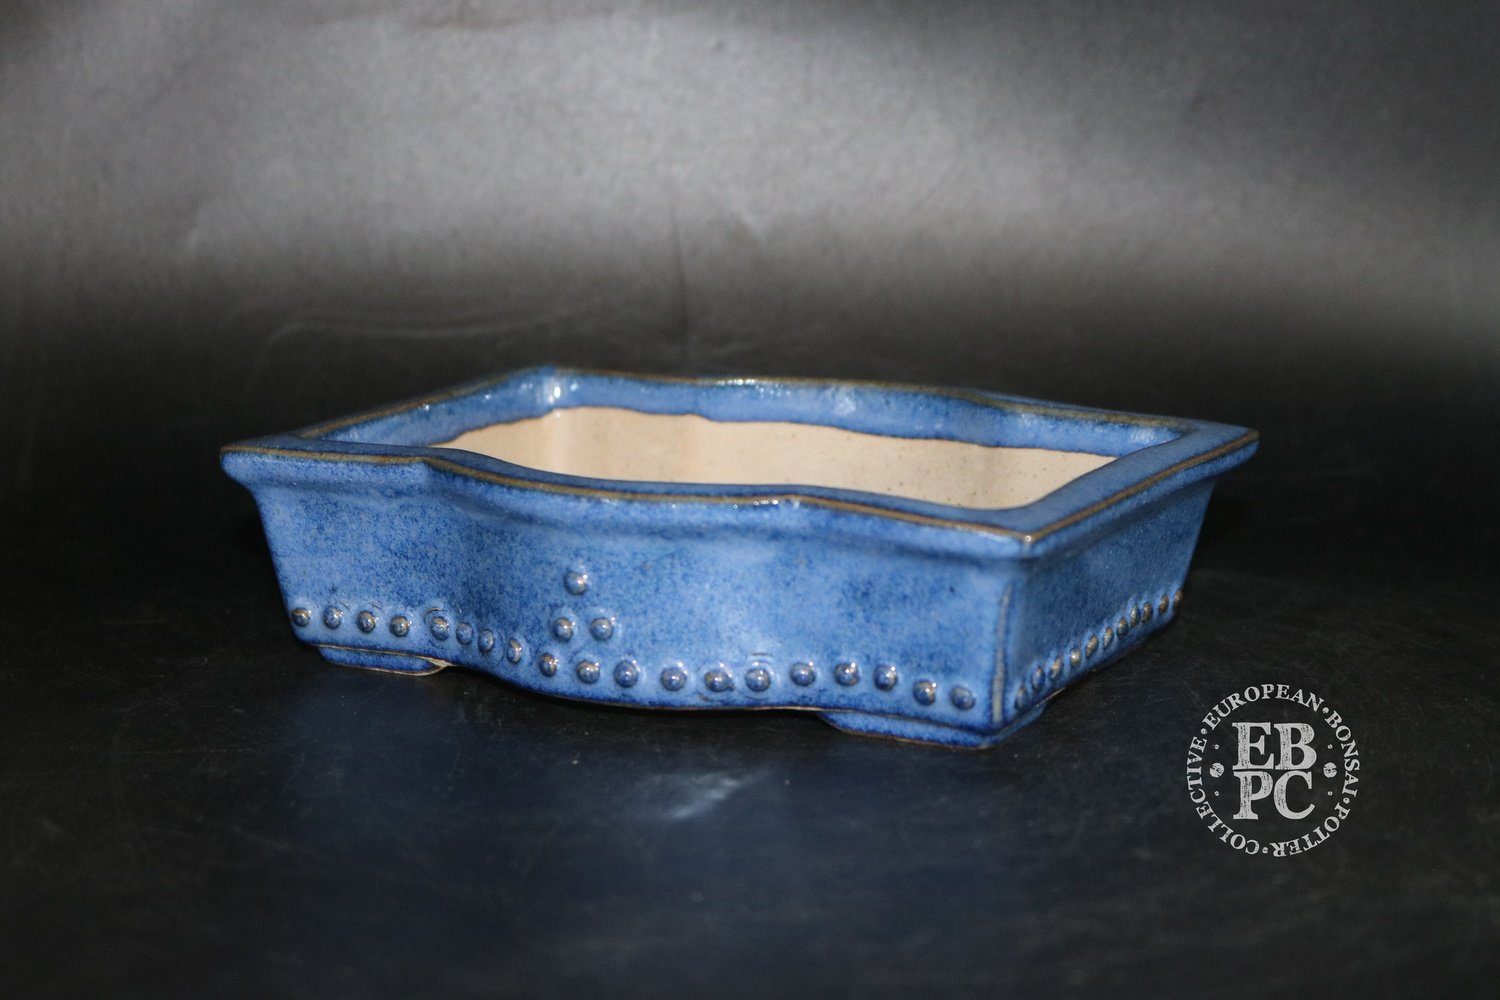 Amdouni Bonsai Pots - 17.2cm; Glazed; 'Bulged' rectangle; Shohin; Namako; Blue; Sami Amdouni